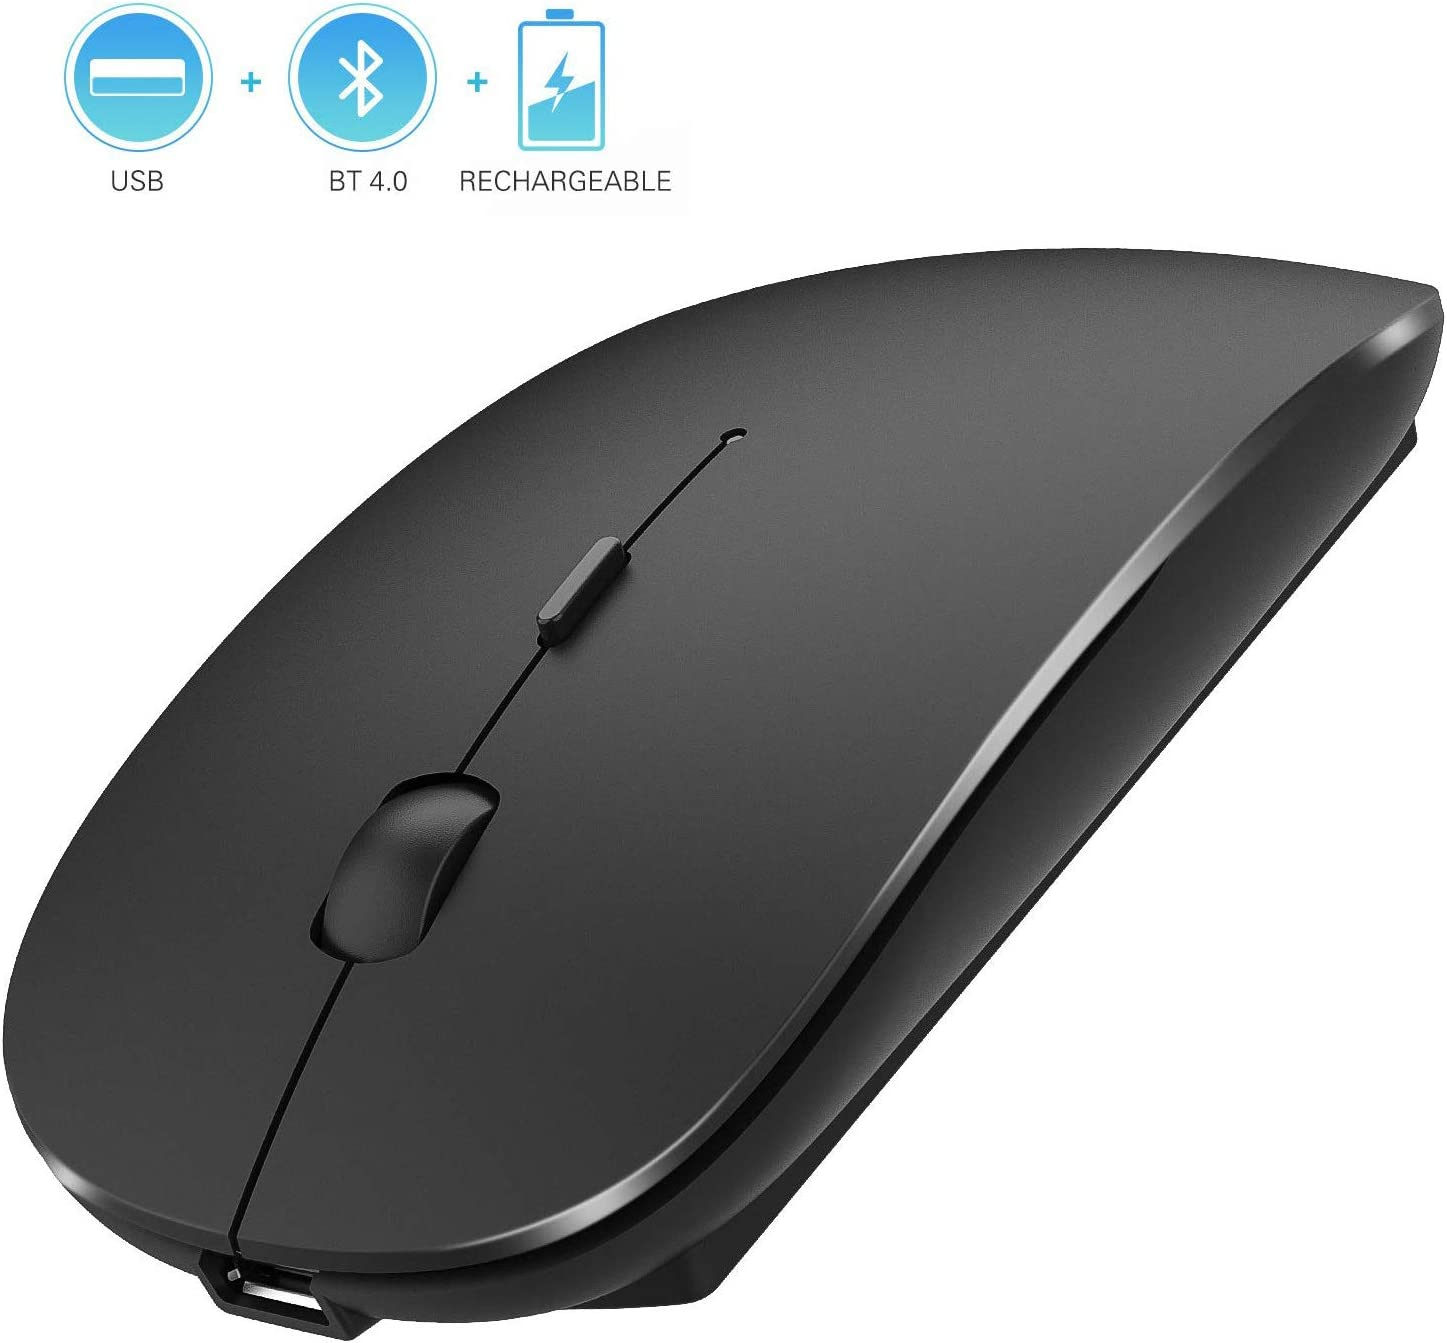 2.4GHz Wireless Bluetooth Mouse, Dual Mode Slim Rechargeable Wireless Mouse Silent USB Mice, 3 Adjustable DPI,Compatible for Laptop Windows Mac Android MAC PC Computer (Black)